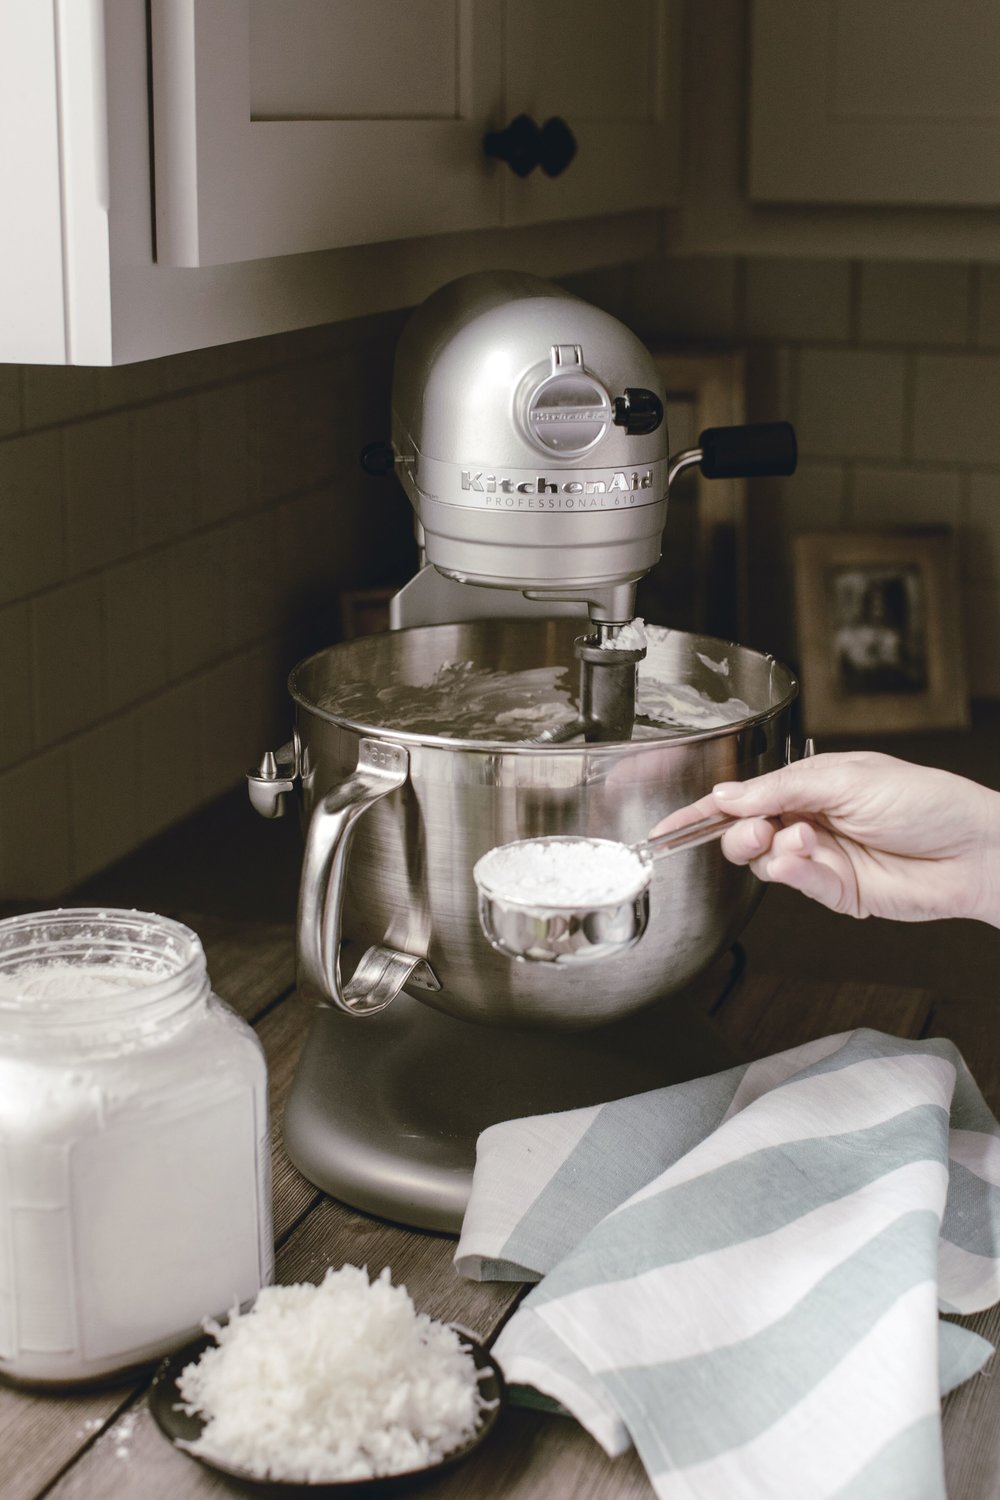 Cake in KitchenAid Mixer